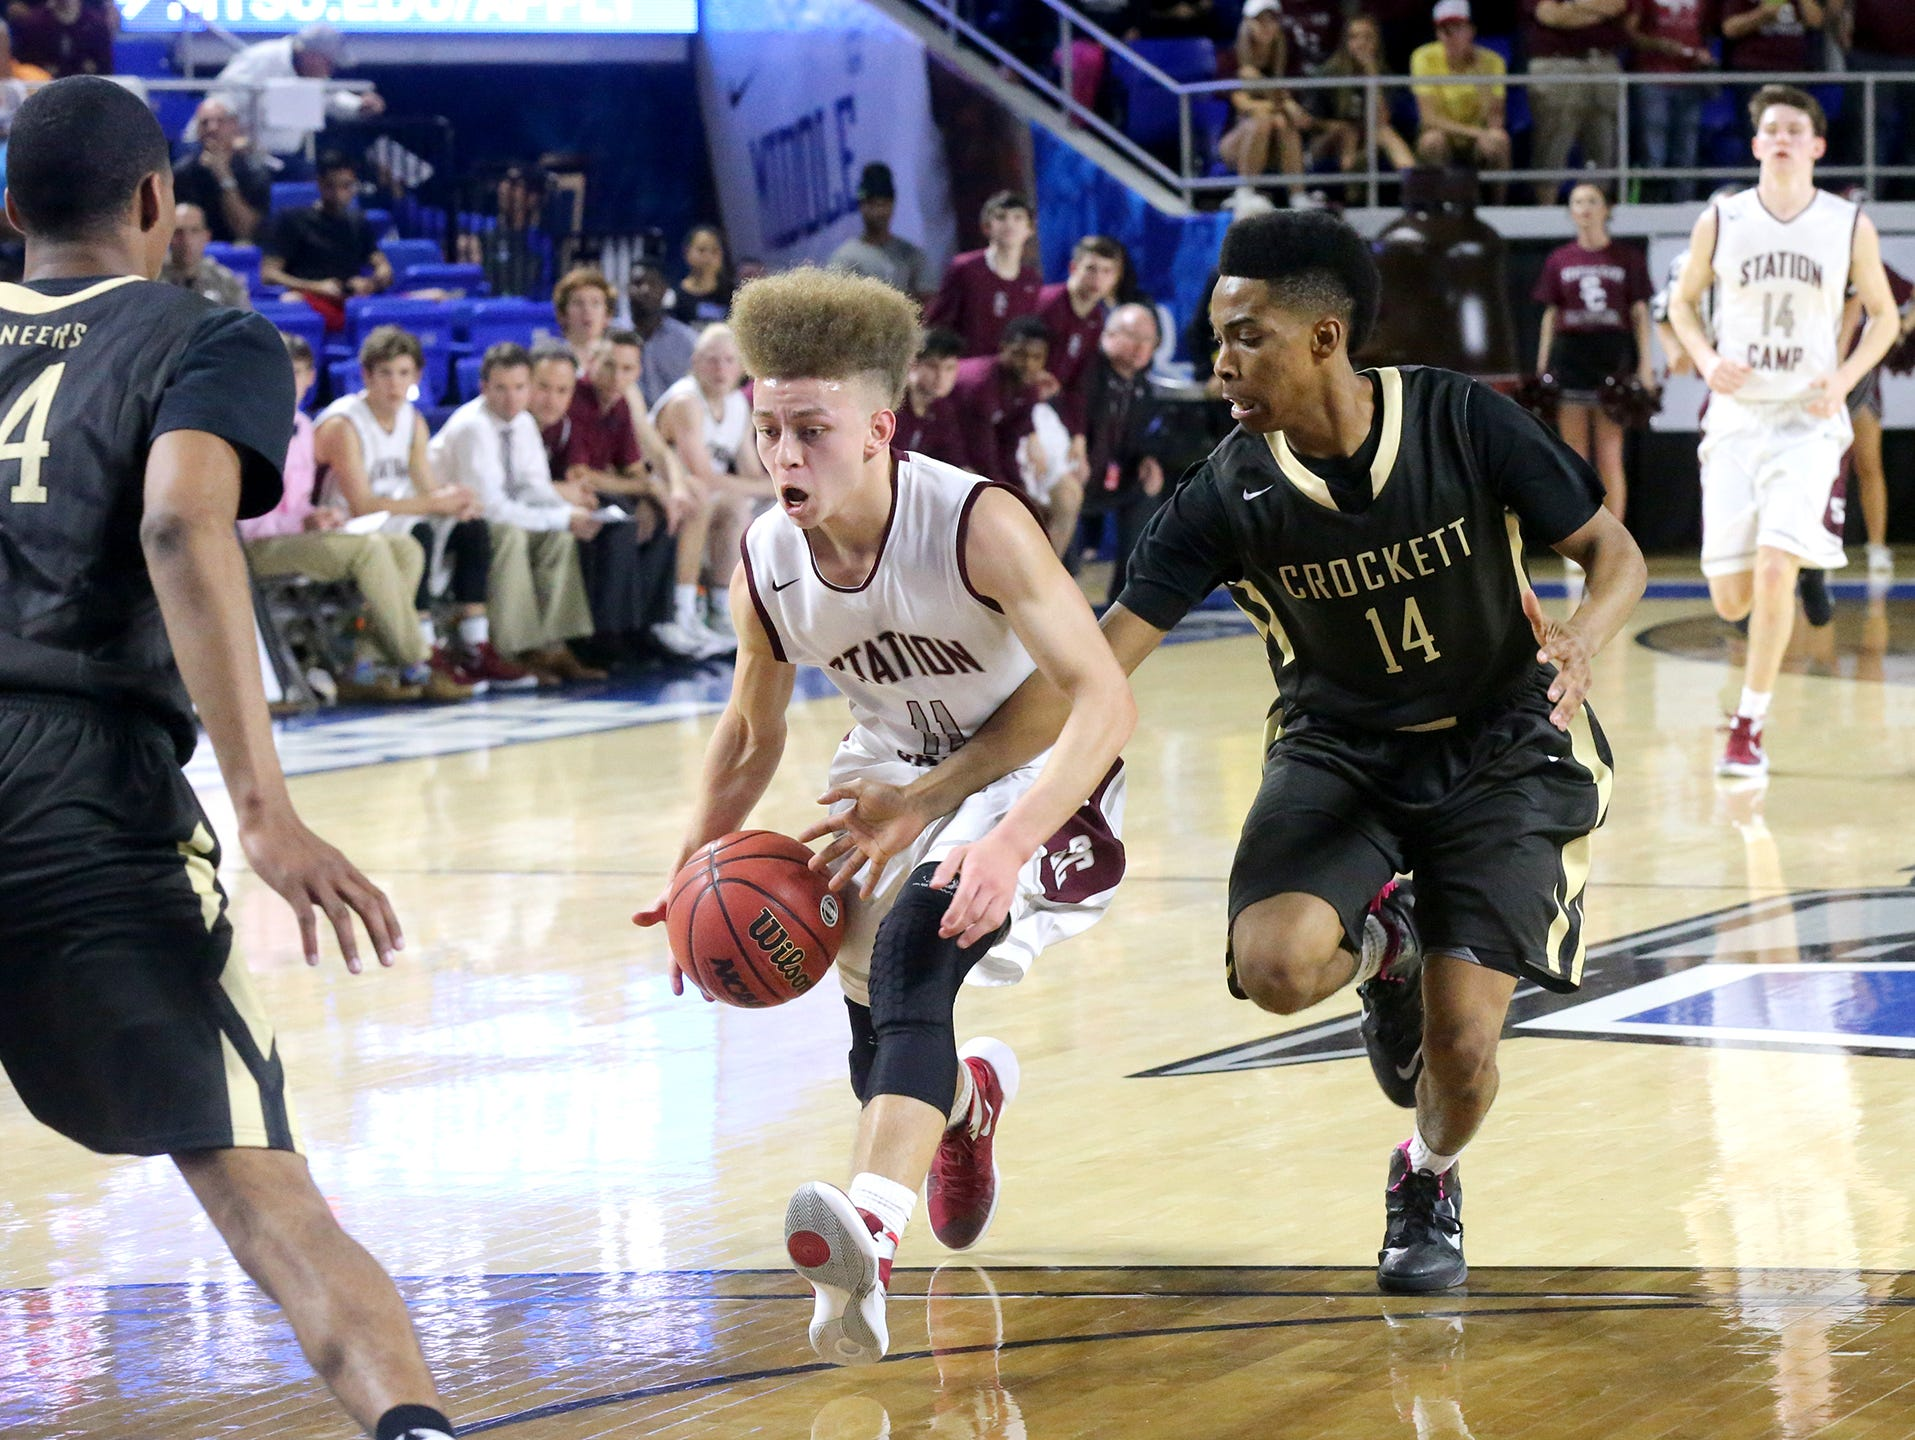 """Station Camp's Chase Freeman (11) rushes toward the basket as David Crockett""""s Darian Delapp (14) tries to steal the ball during the State Tournament Quarterfinal game Wednesday at MTSU."""